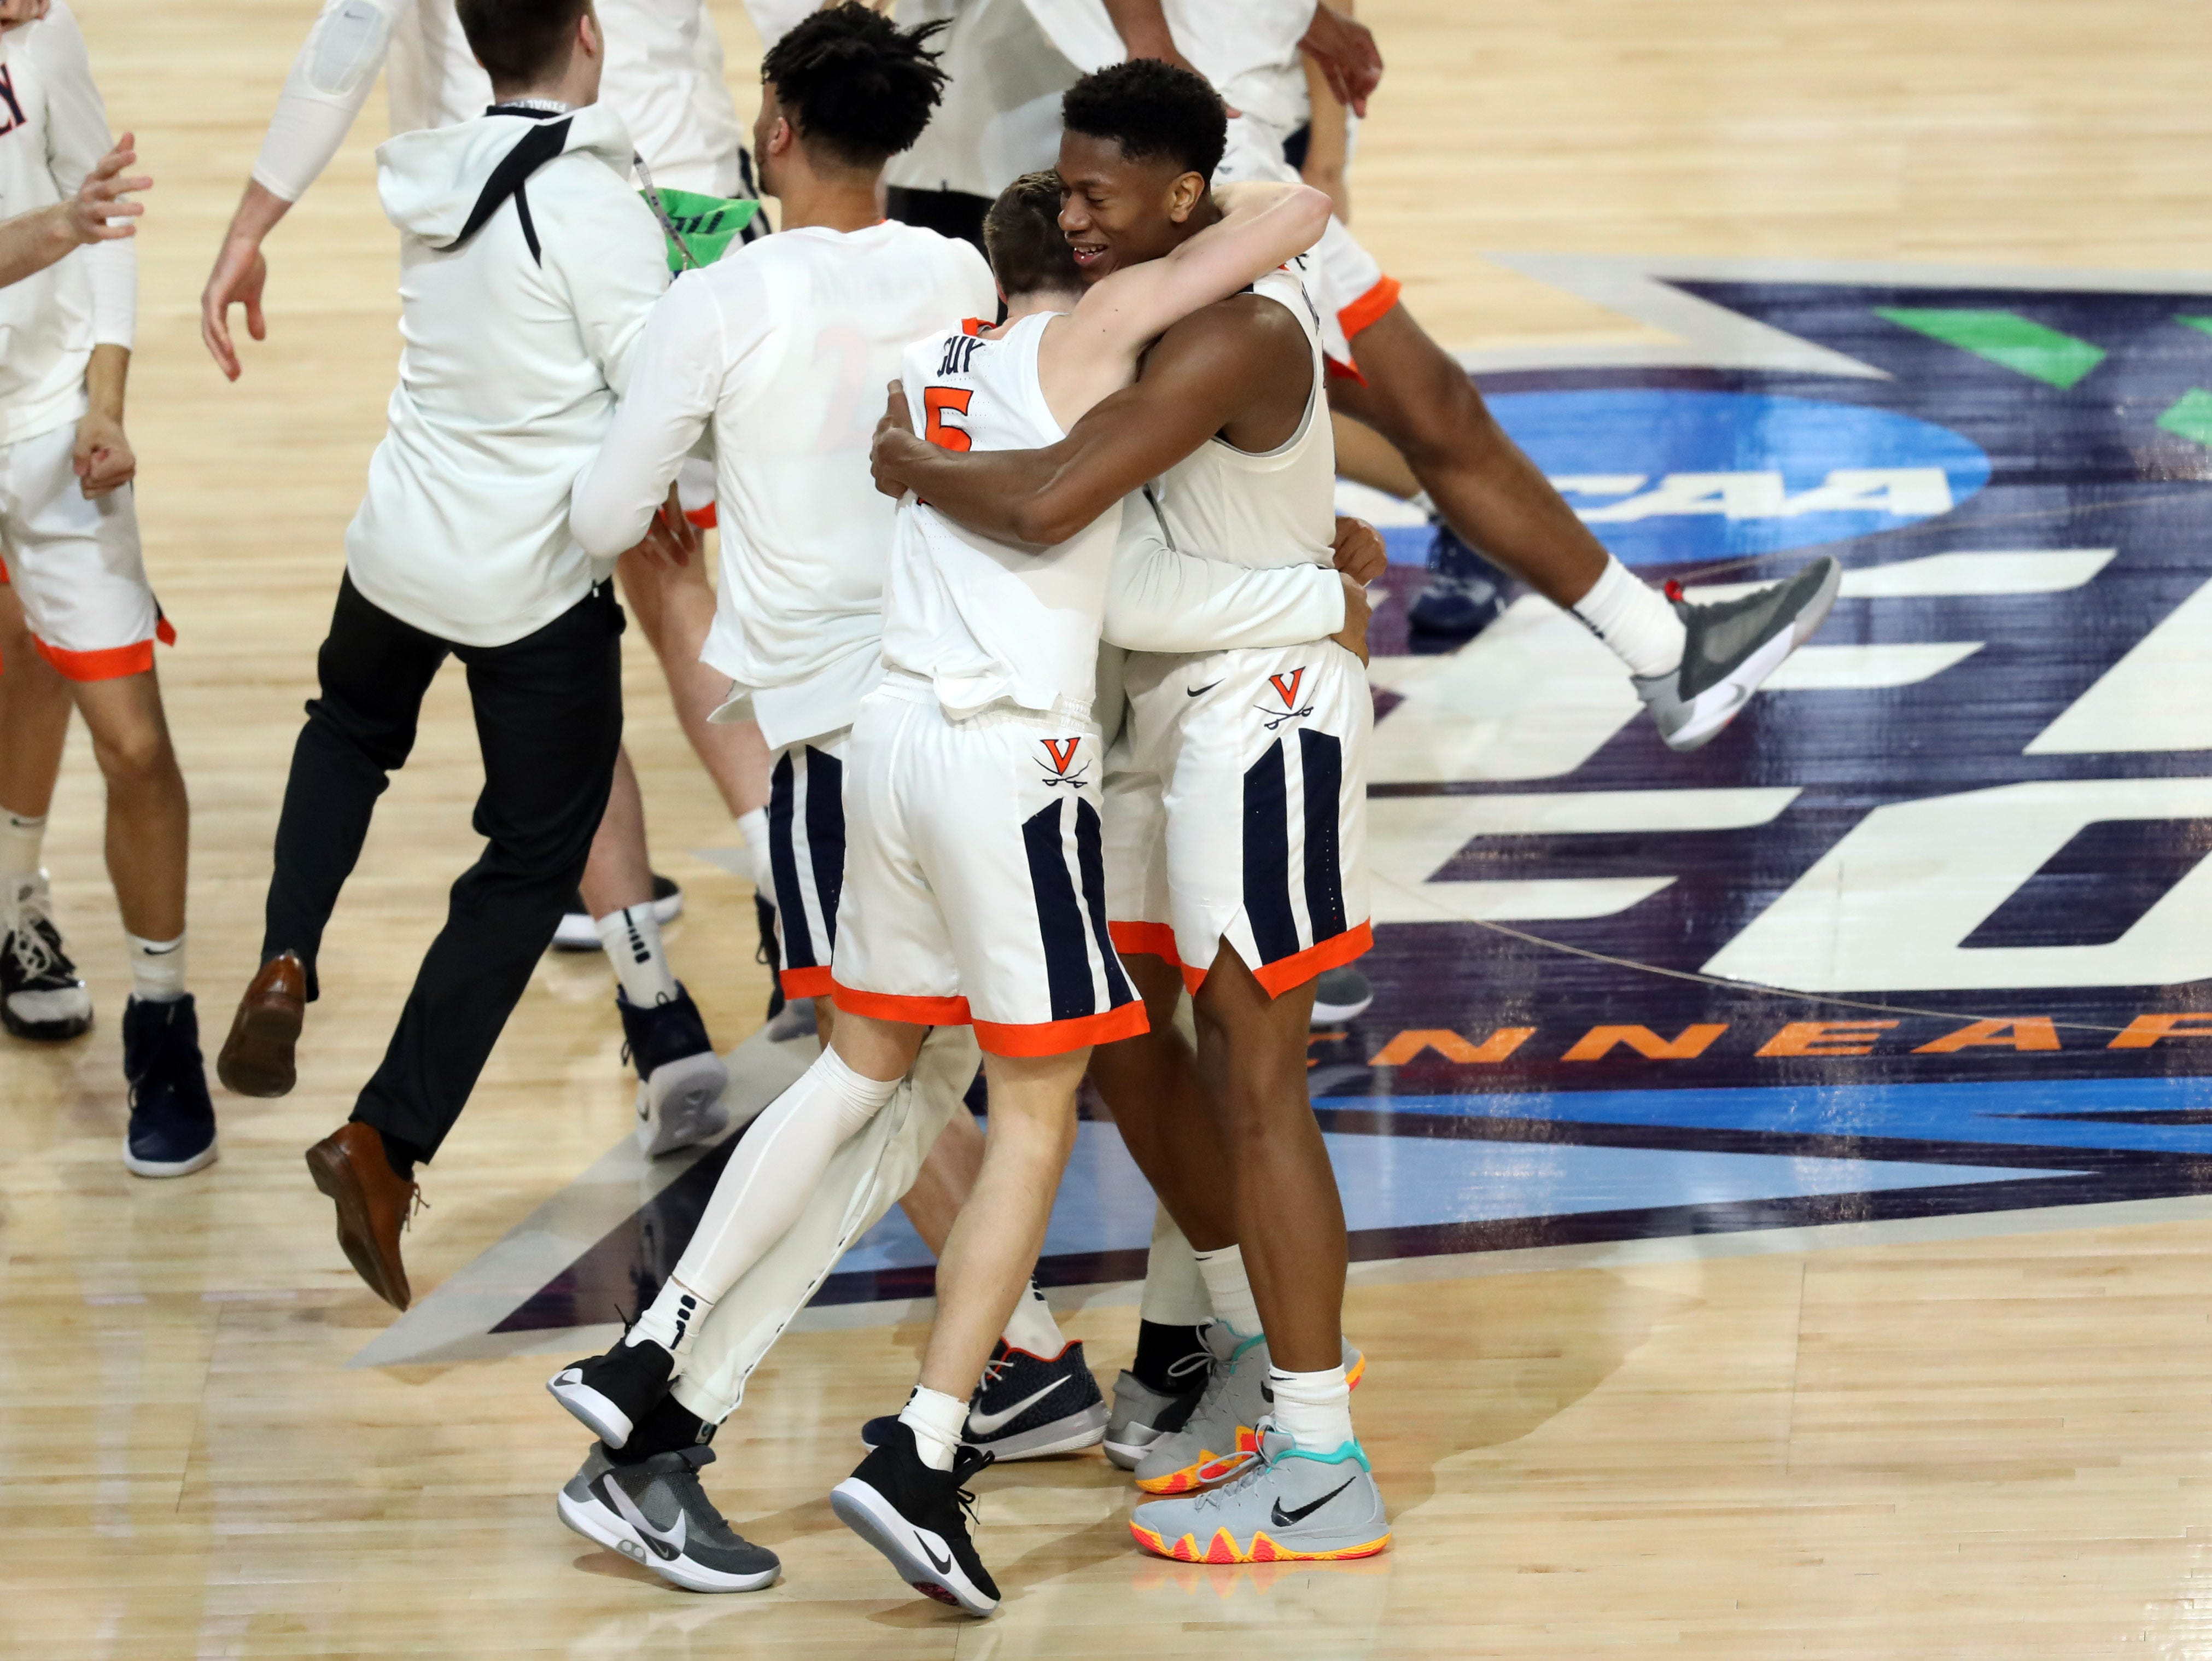 Apr 8, 2019; Minneapolis, MN, USA; Virginia Cavaliers guard Kyle Guy (5) and guard De'Andre Hunter (12) embrace after defeating the Texas Tech Red Raiders in the championship game of the 2019 men's Final Four at US Bank Stadium. Mandatory Credit: Brace Hemmelgarn-USA TODAY Sports